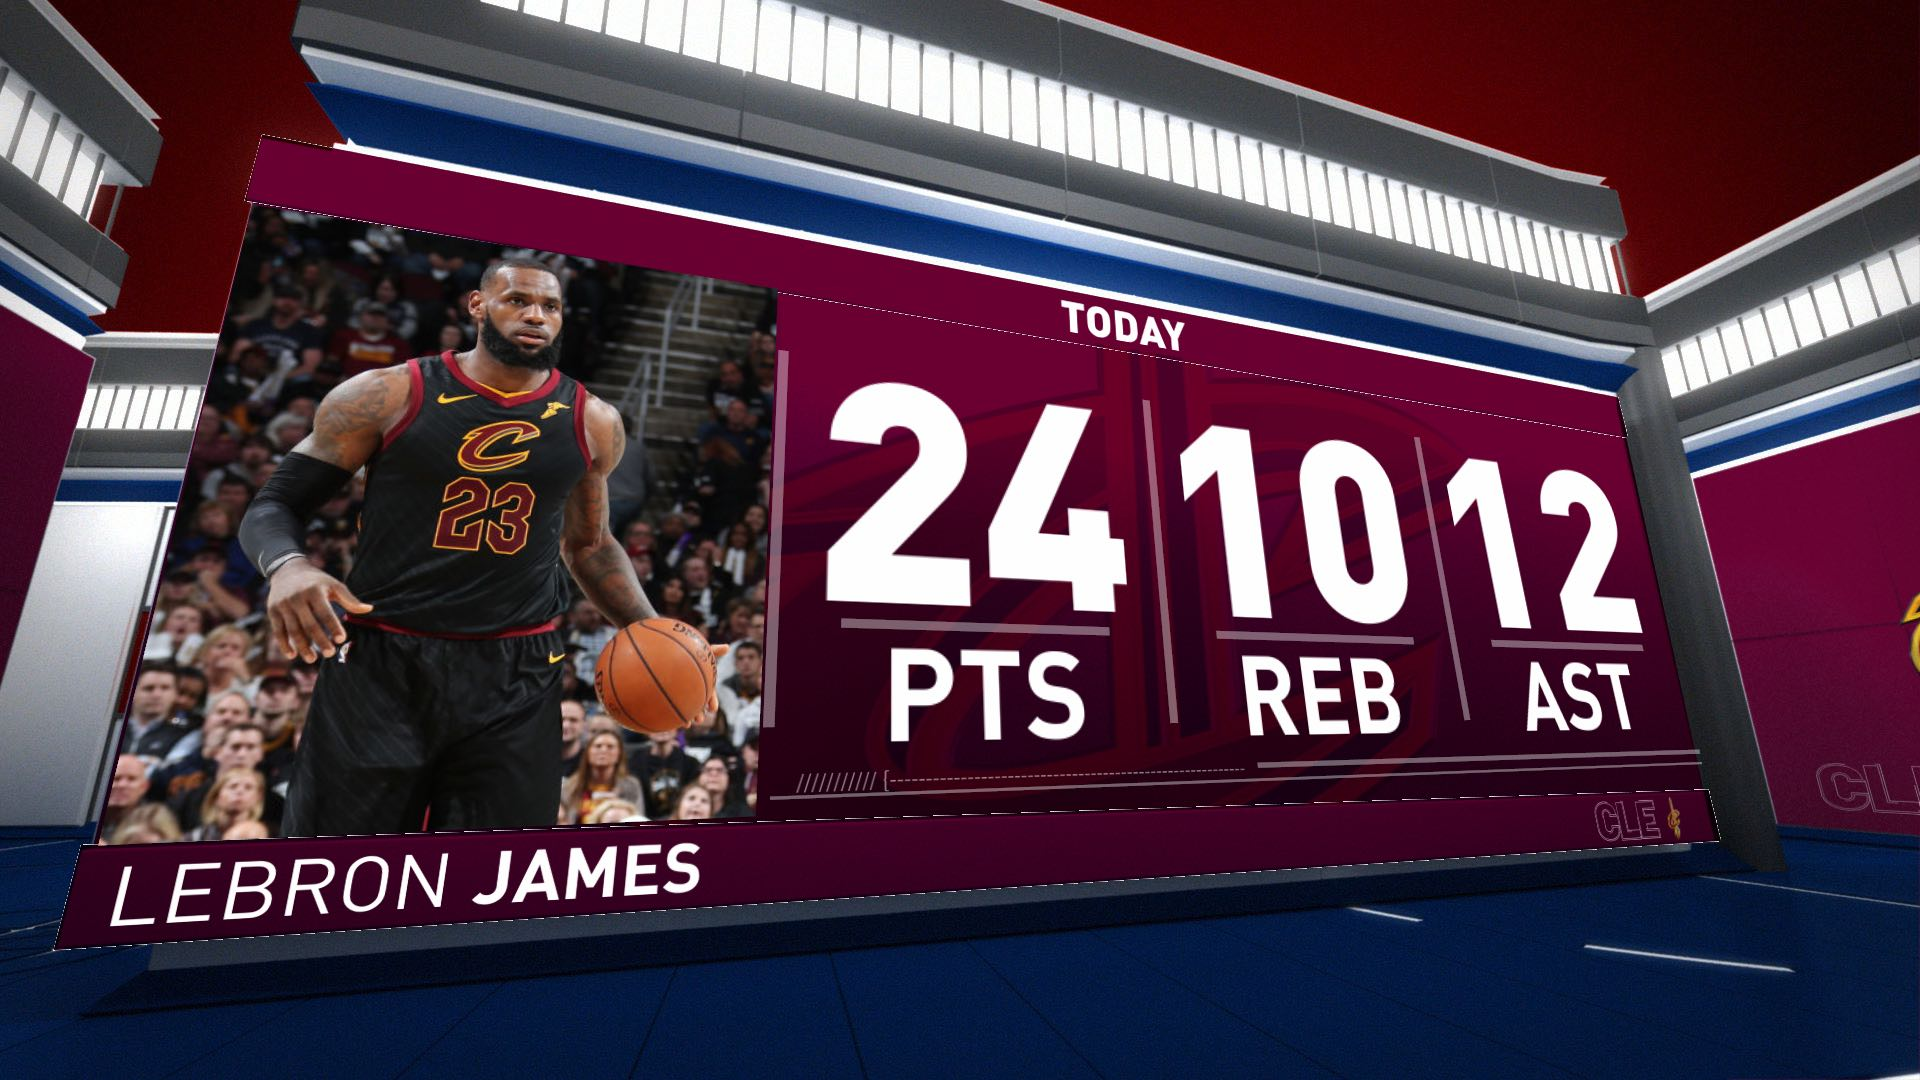 LeBron James Posts 24 points, 12 assists & 10 rebounds vs. Indiana Pacers